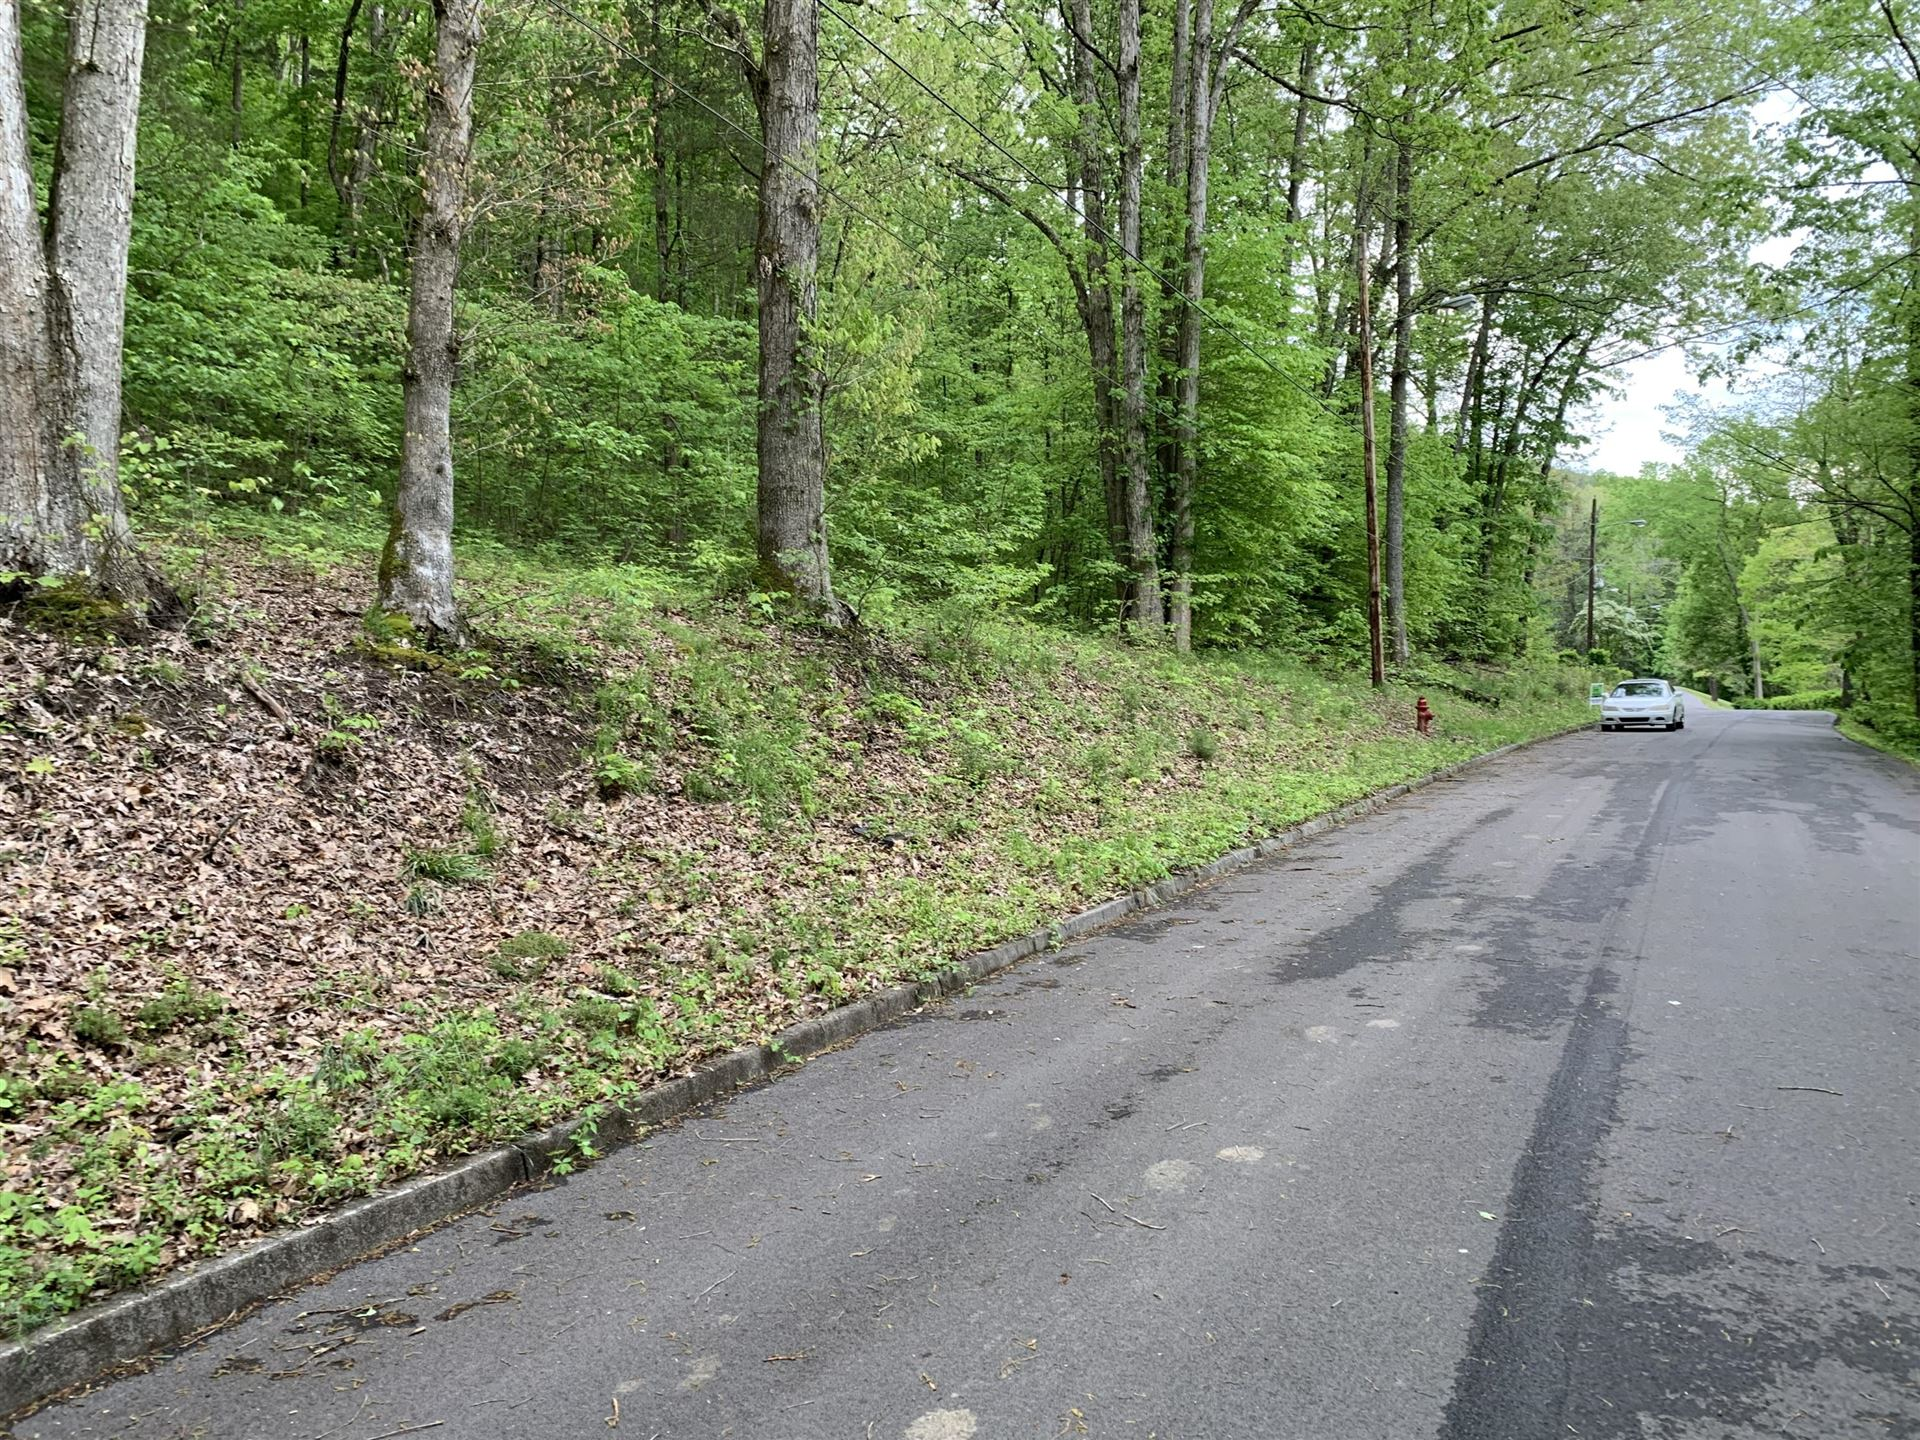 Photo of Tbd Havenmore Drive, Kingsport, TN 37663 (MLS # 9907686)